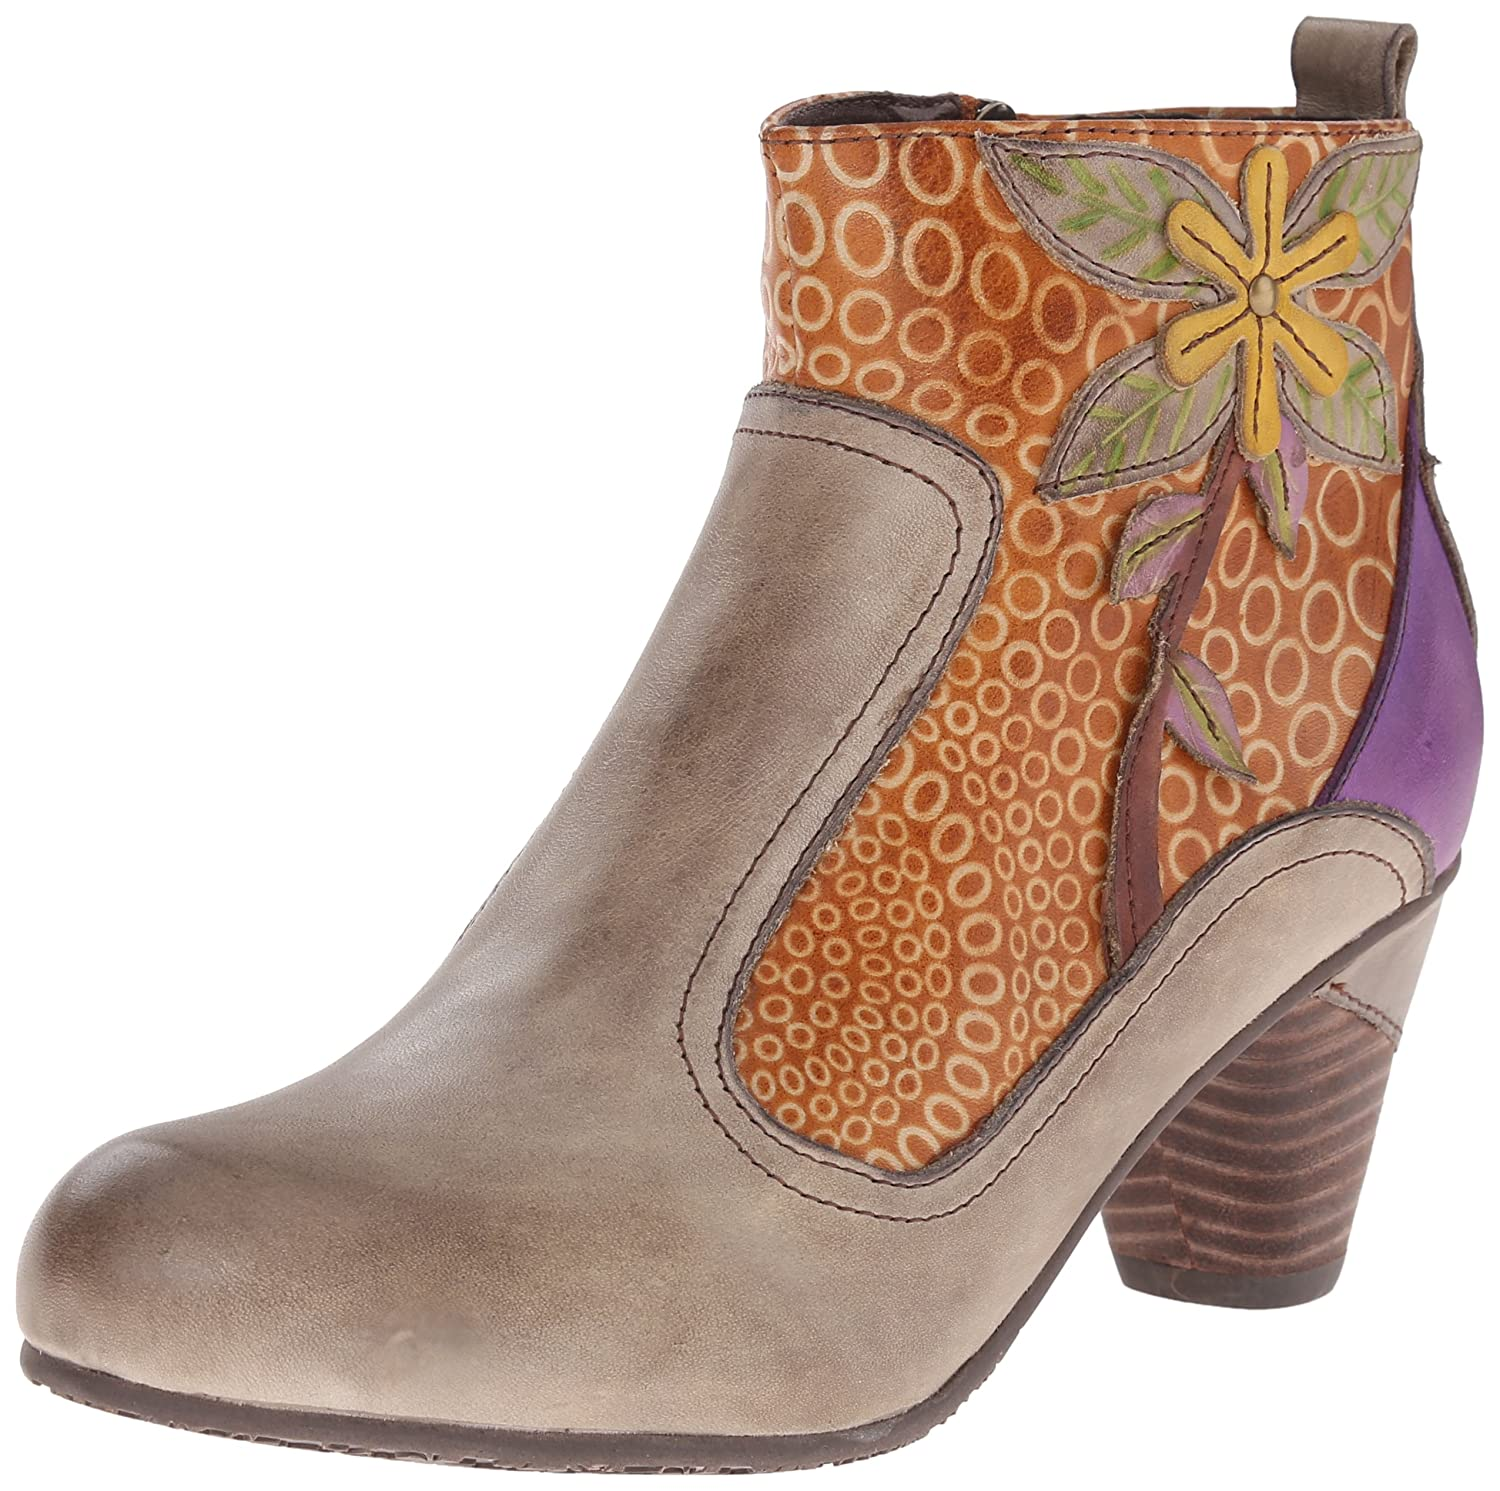 L'Artiste by Spring Step Women's Dramatic Boot B00XVUDGF2 41 EU/9.5-10 M US|Taupe Multi